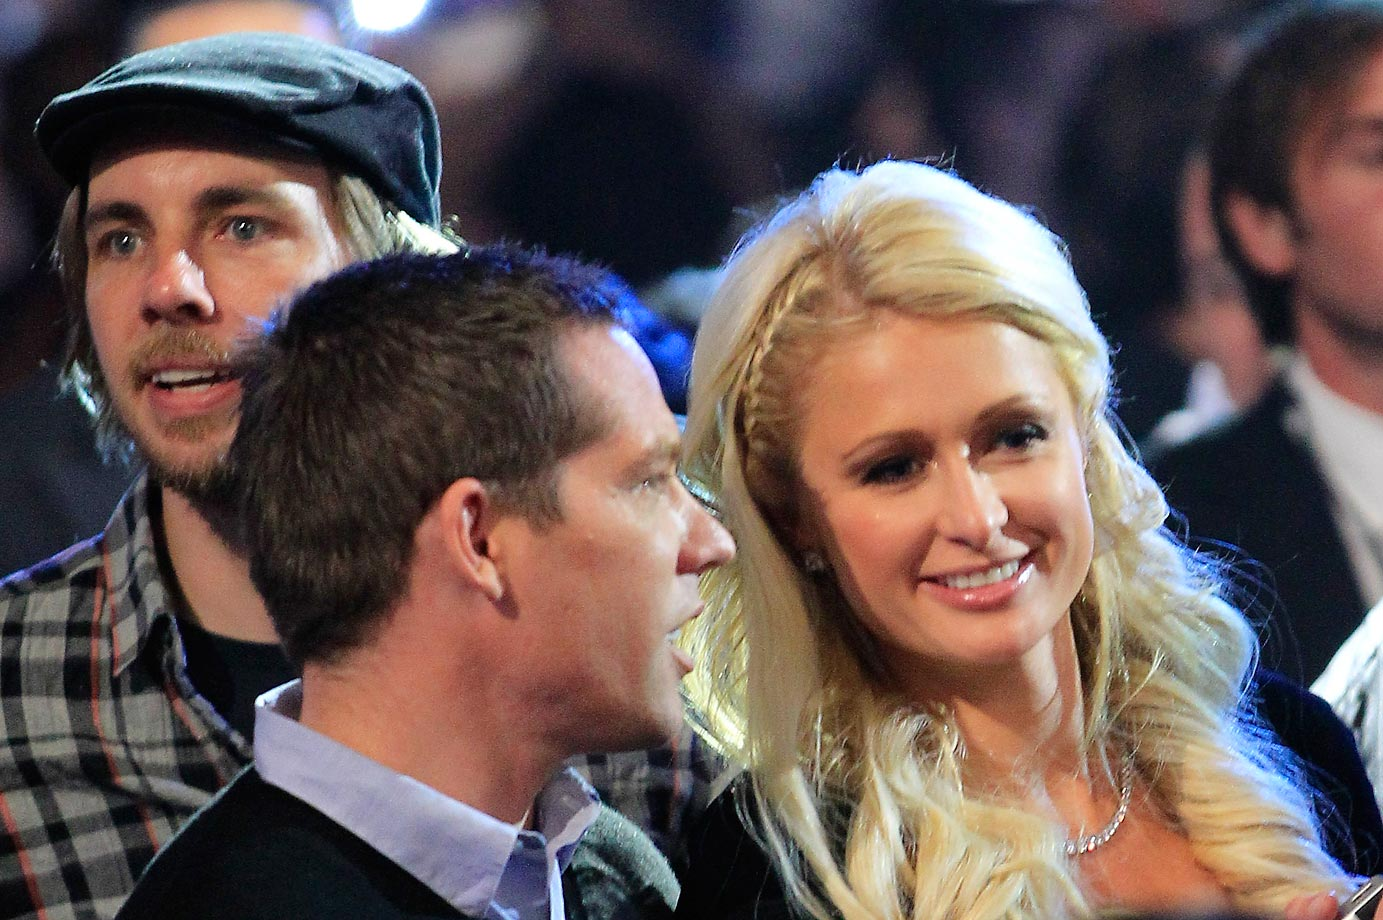 Paris Hilton, Cy Waits and actor Dax Shepard attend the Manny Pacquiao and Shane Mosley fight.